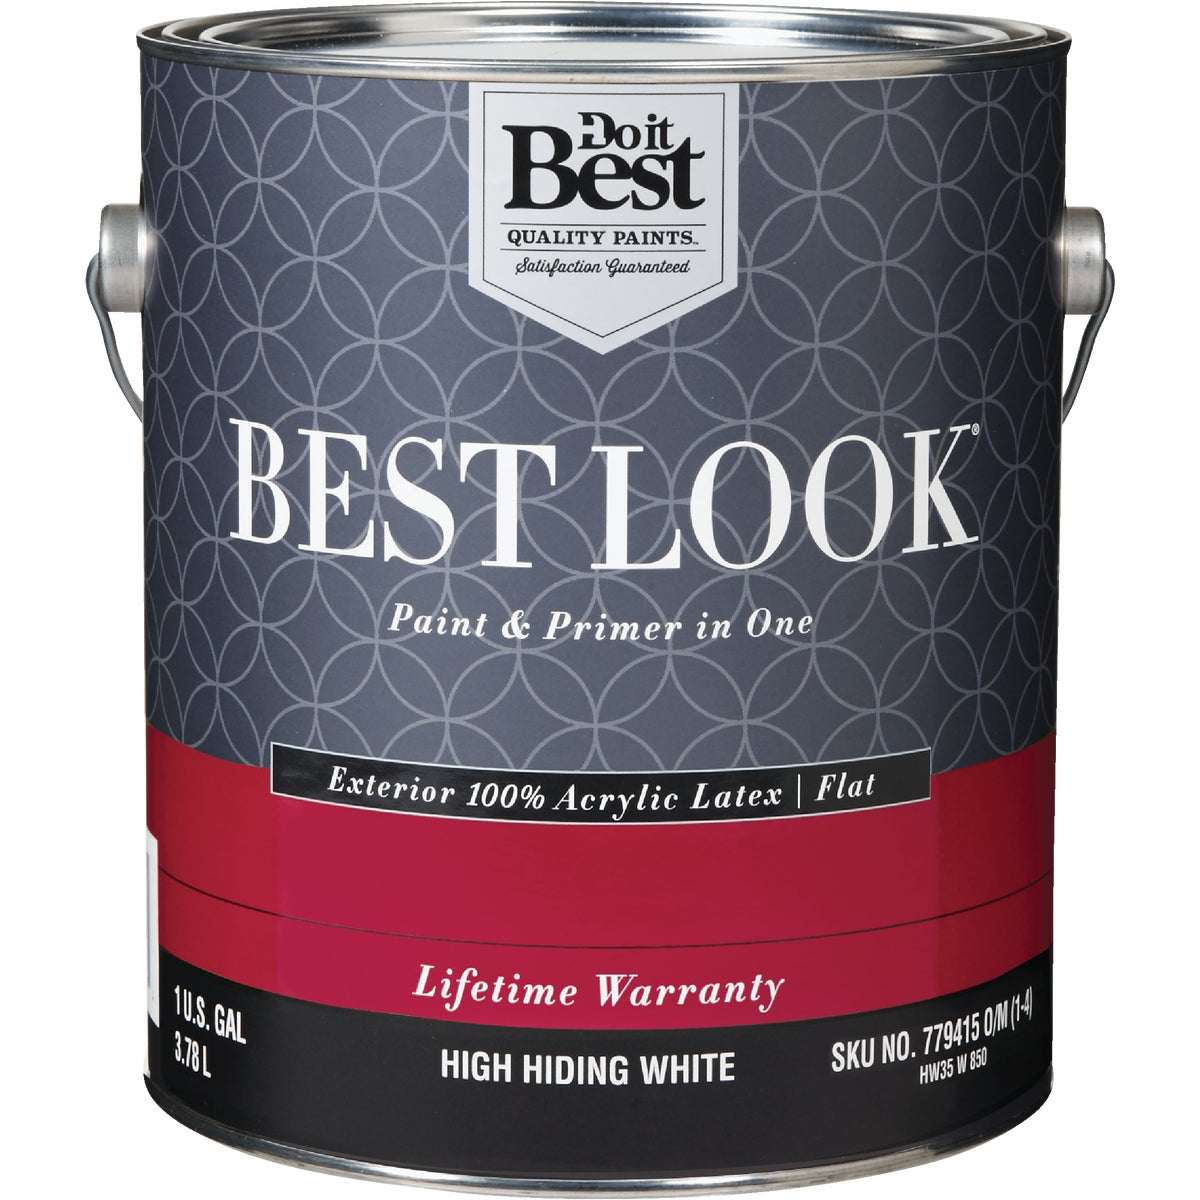 EXT FLT H HIDE WHT PAINT - HW35W0850-16 by Do it Best